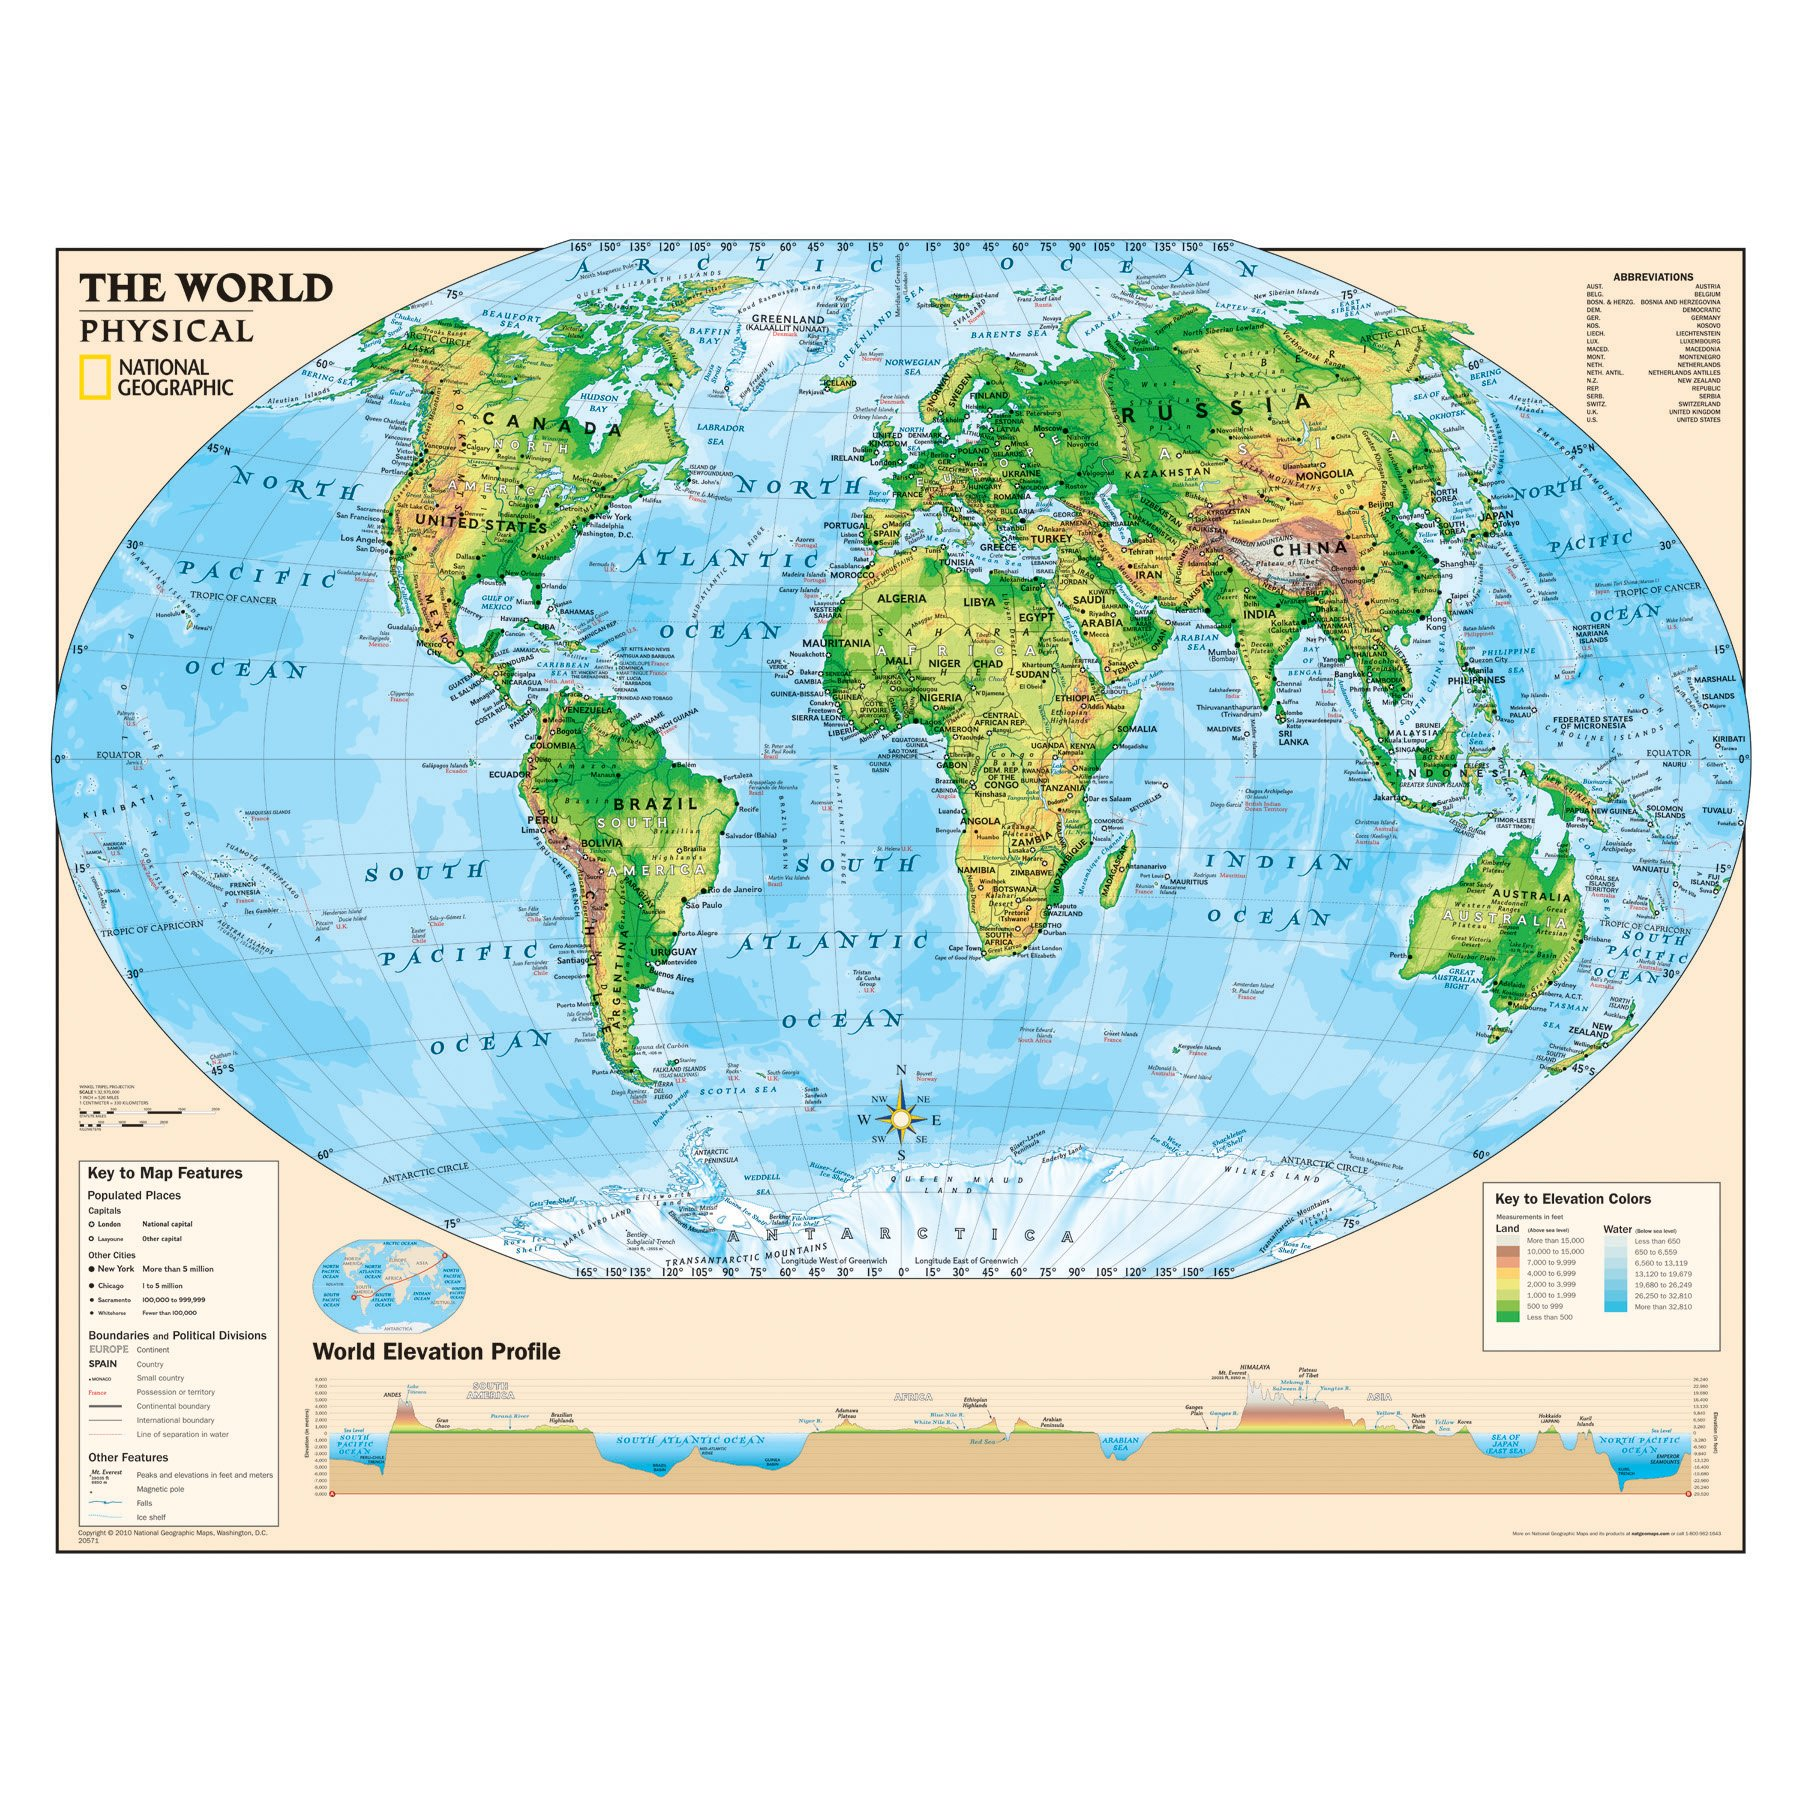 National Geographic: Kids Physical World Education: Grades 4-12 Wall Map - Laminated (51 x 40 inches) (National Geographic Reference Map) by National Geographic Maps (Image #1)